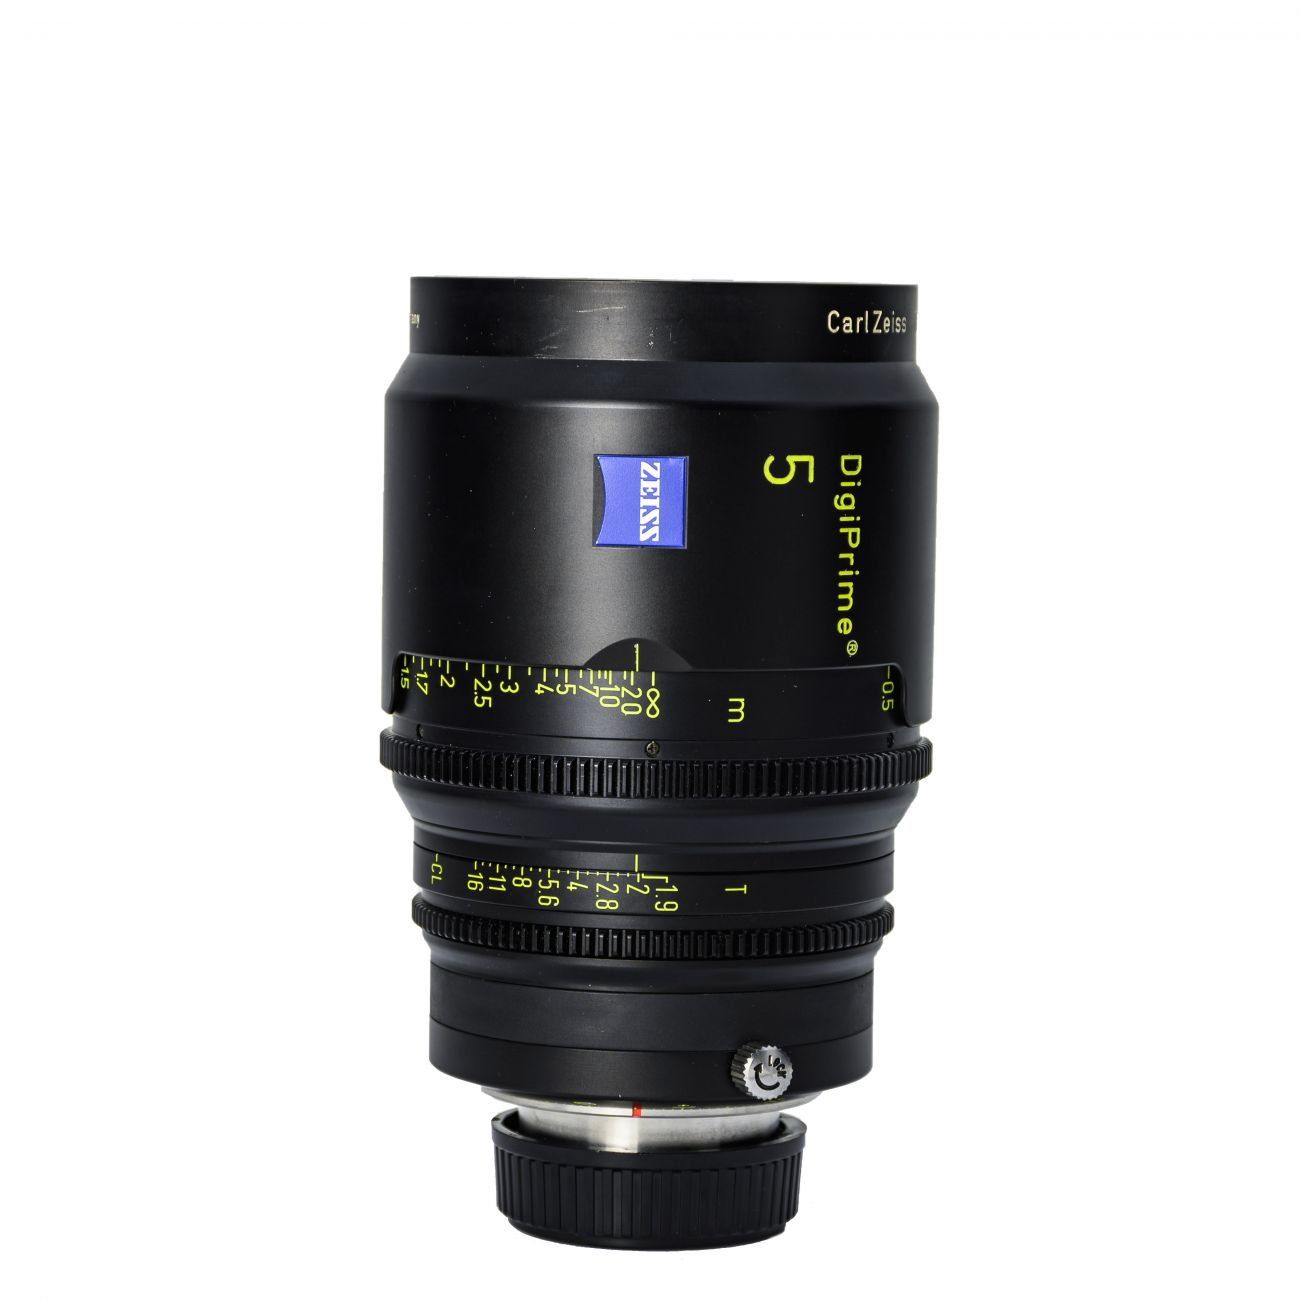 5mm lens Carl Zeiss DigiPrime Distagon T1.9 B4-mount